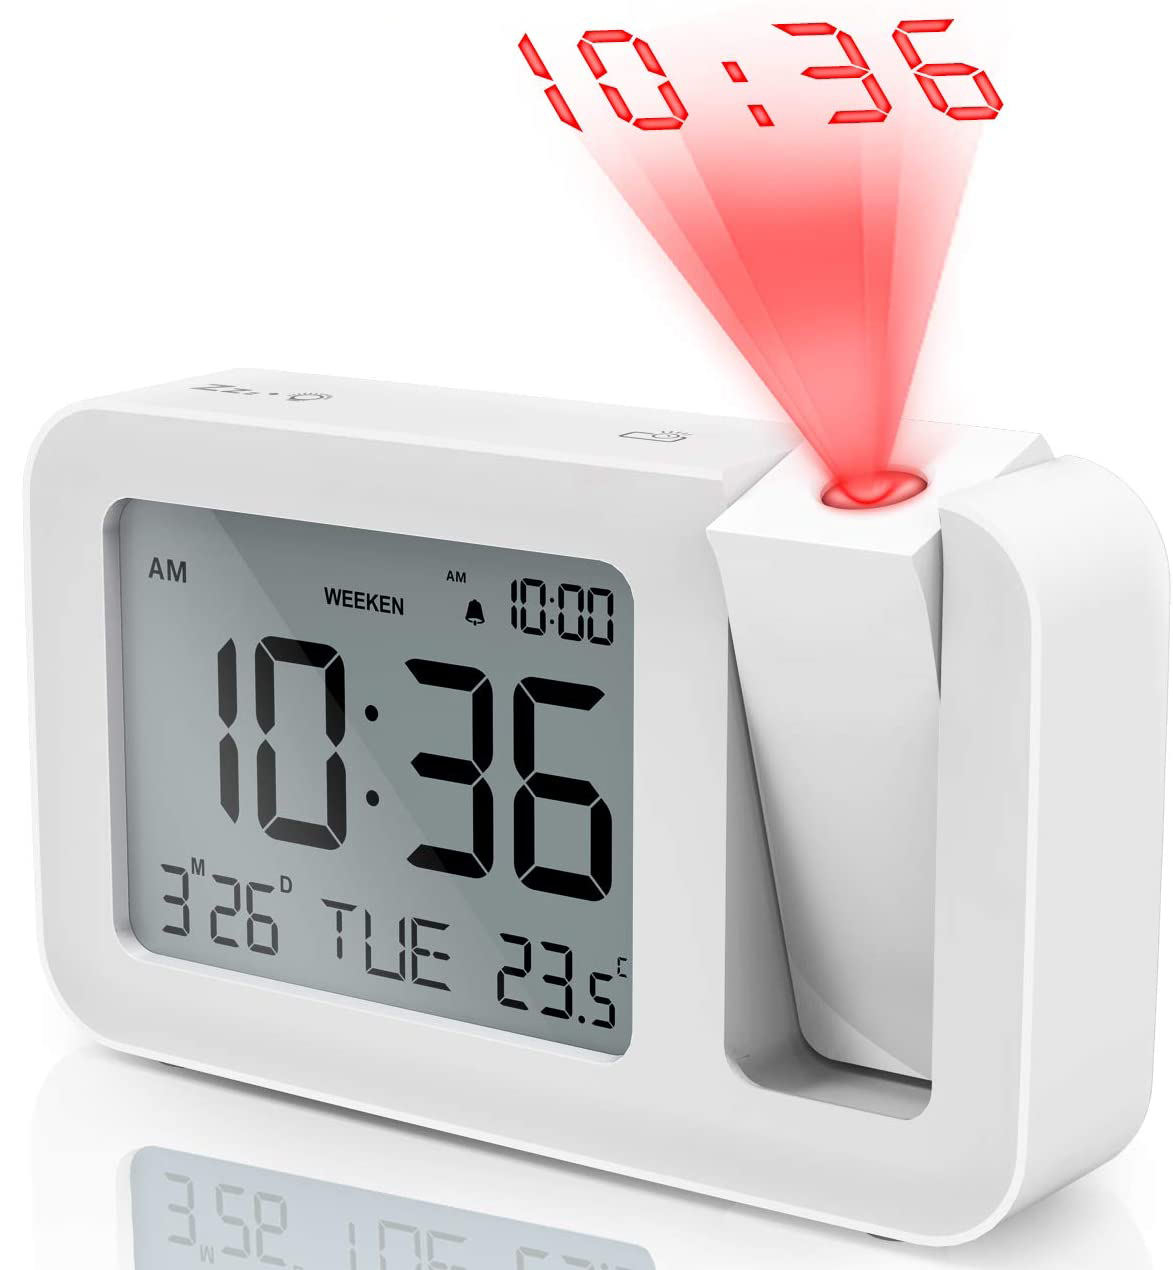 Small Electronic Alarm Clock With Blue Backlight For Promotional Gift